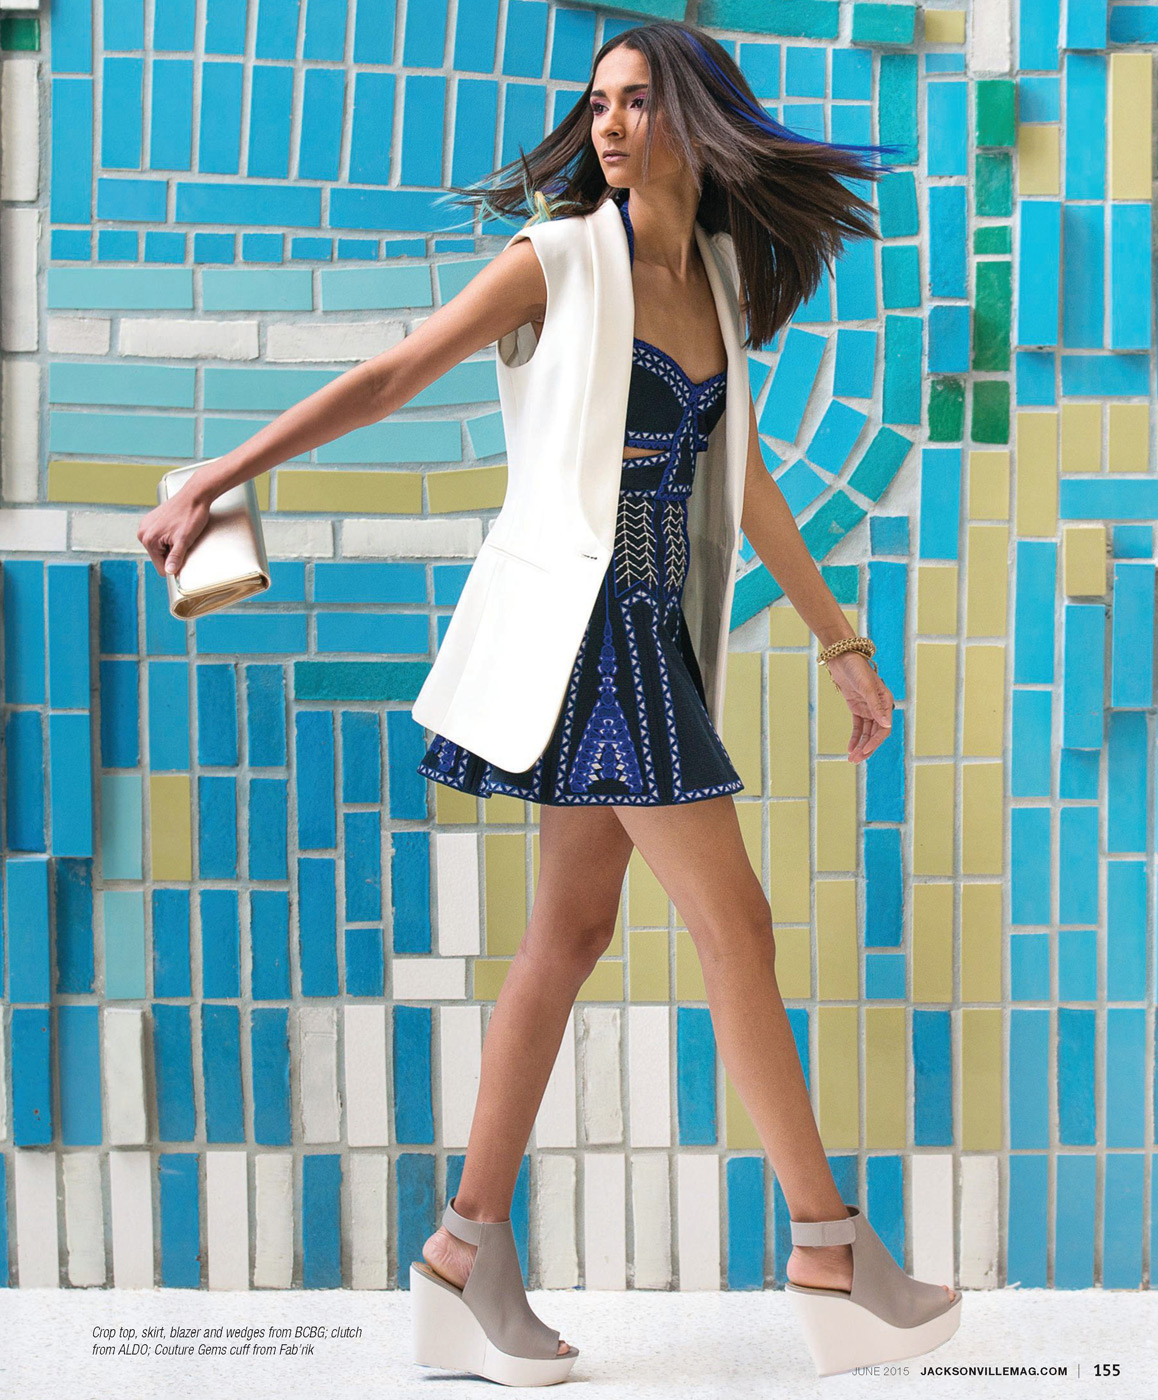 Jacksonville-Magazine-June-2015-Urban-Renewal-Fashion-Editorial-by-Agnes-Lopez-0003@2x